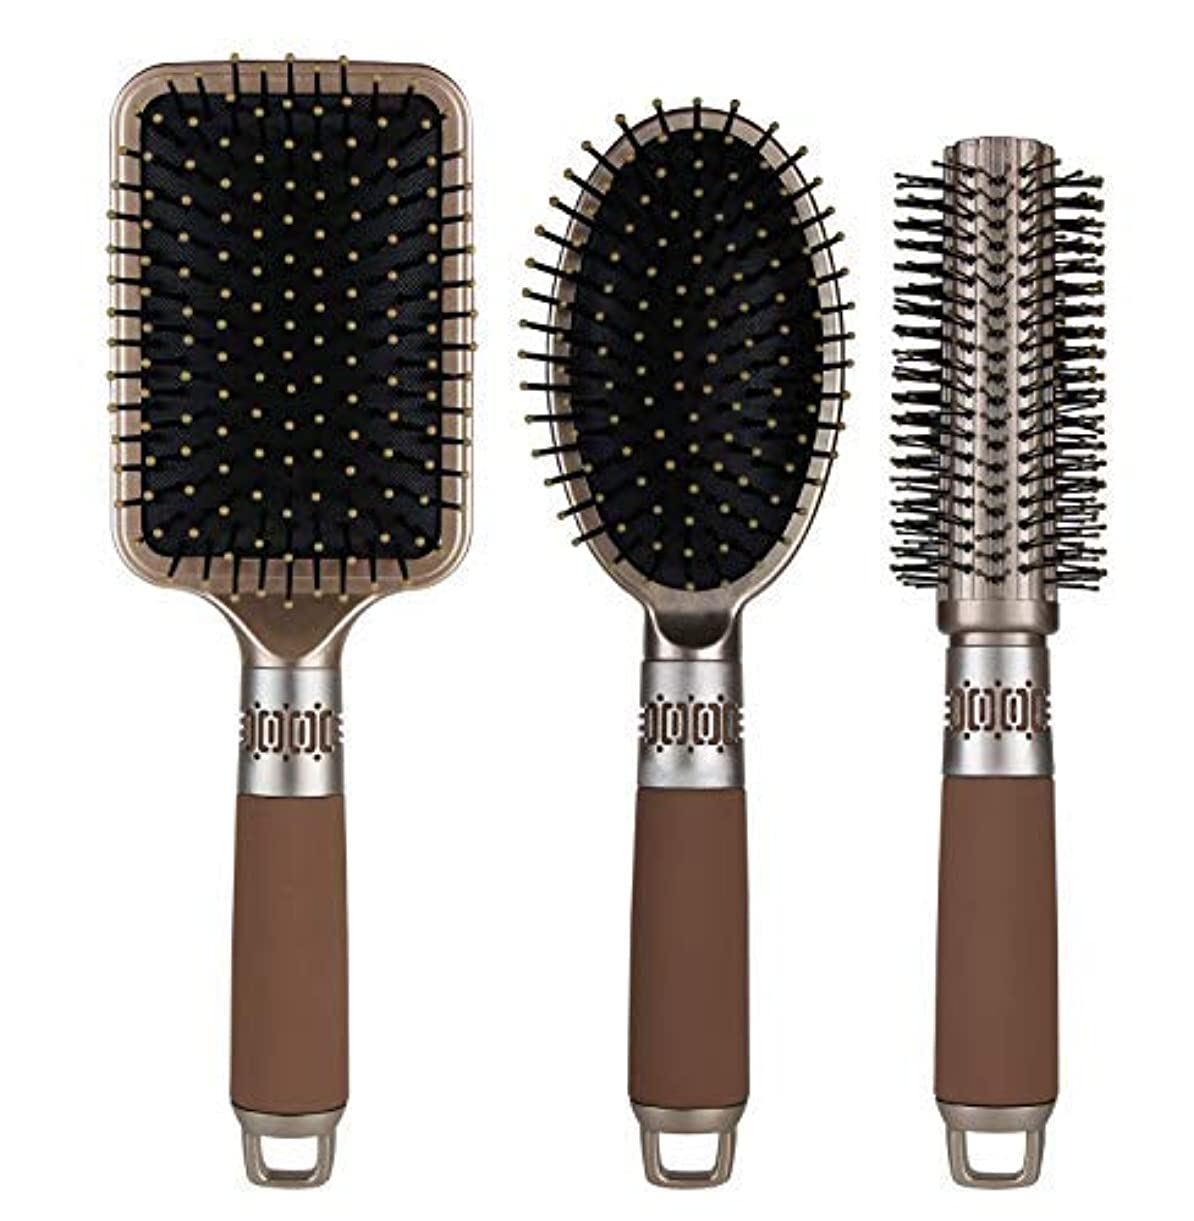 野心晩ごはん髄NVTED 3PCS Hair Combs, Massage Paddle Round Brush Hair Brushes Set Anti Static Detangling Air Cushion Bristle...